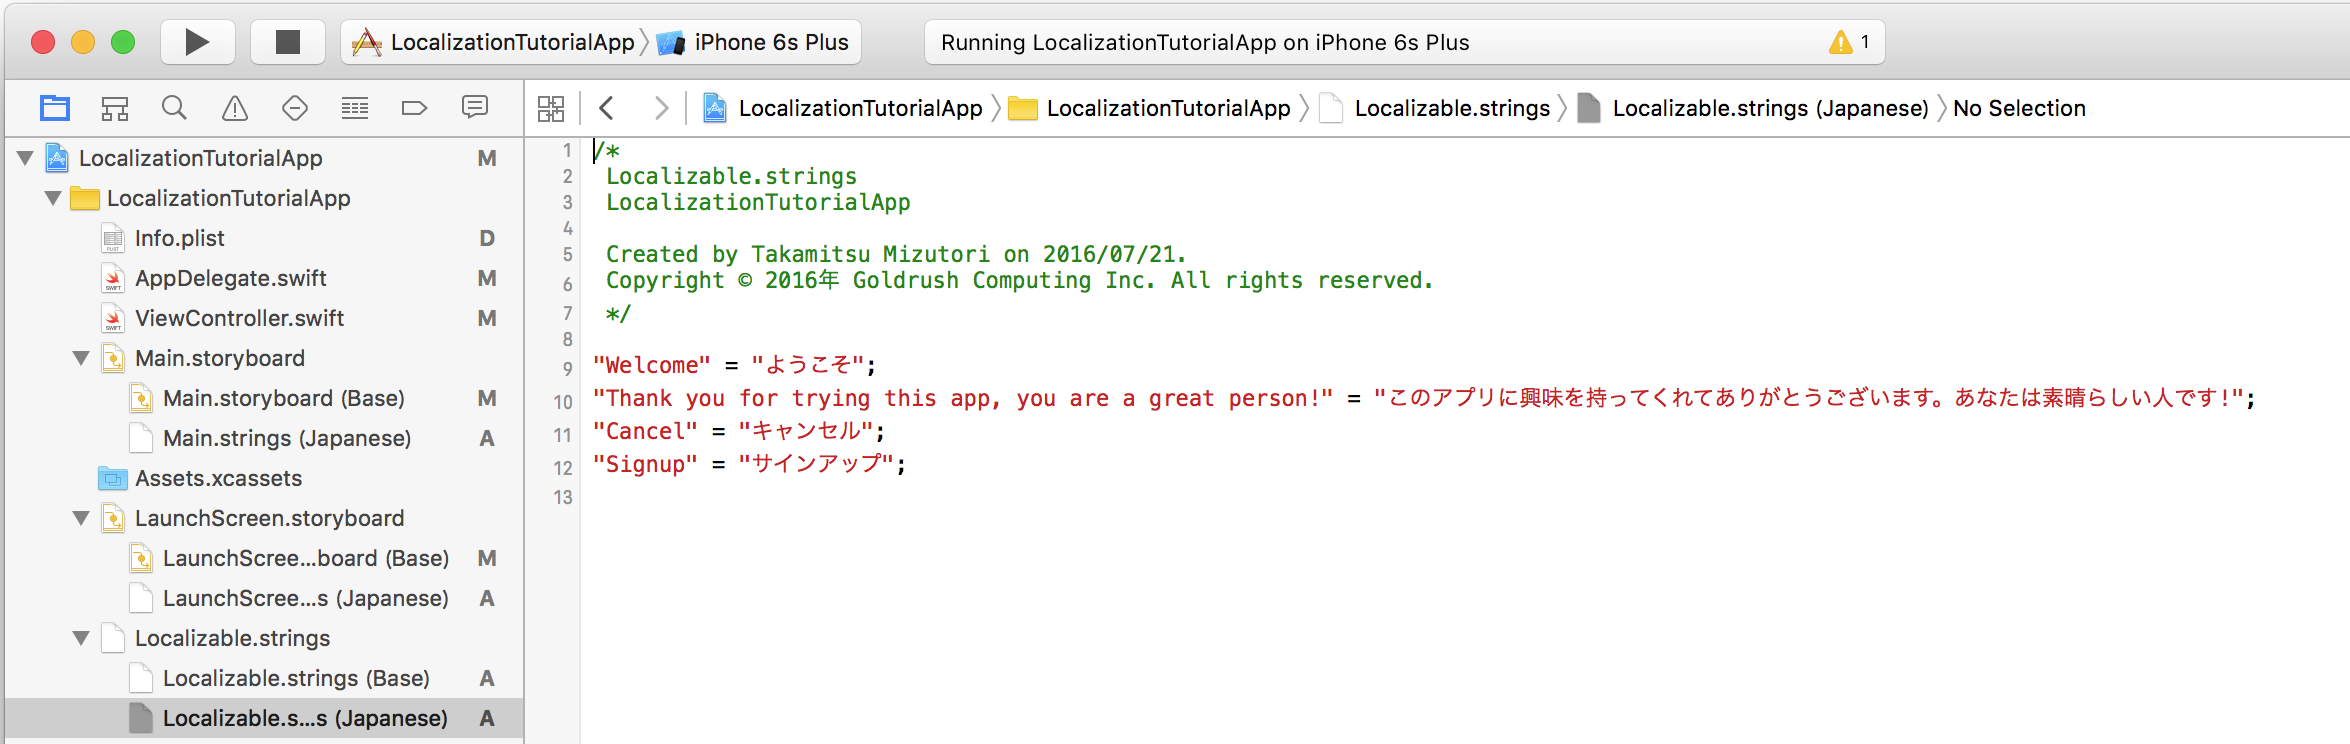 iOS Localization Tutorial - Lean Localization - Medium